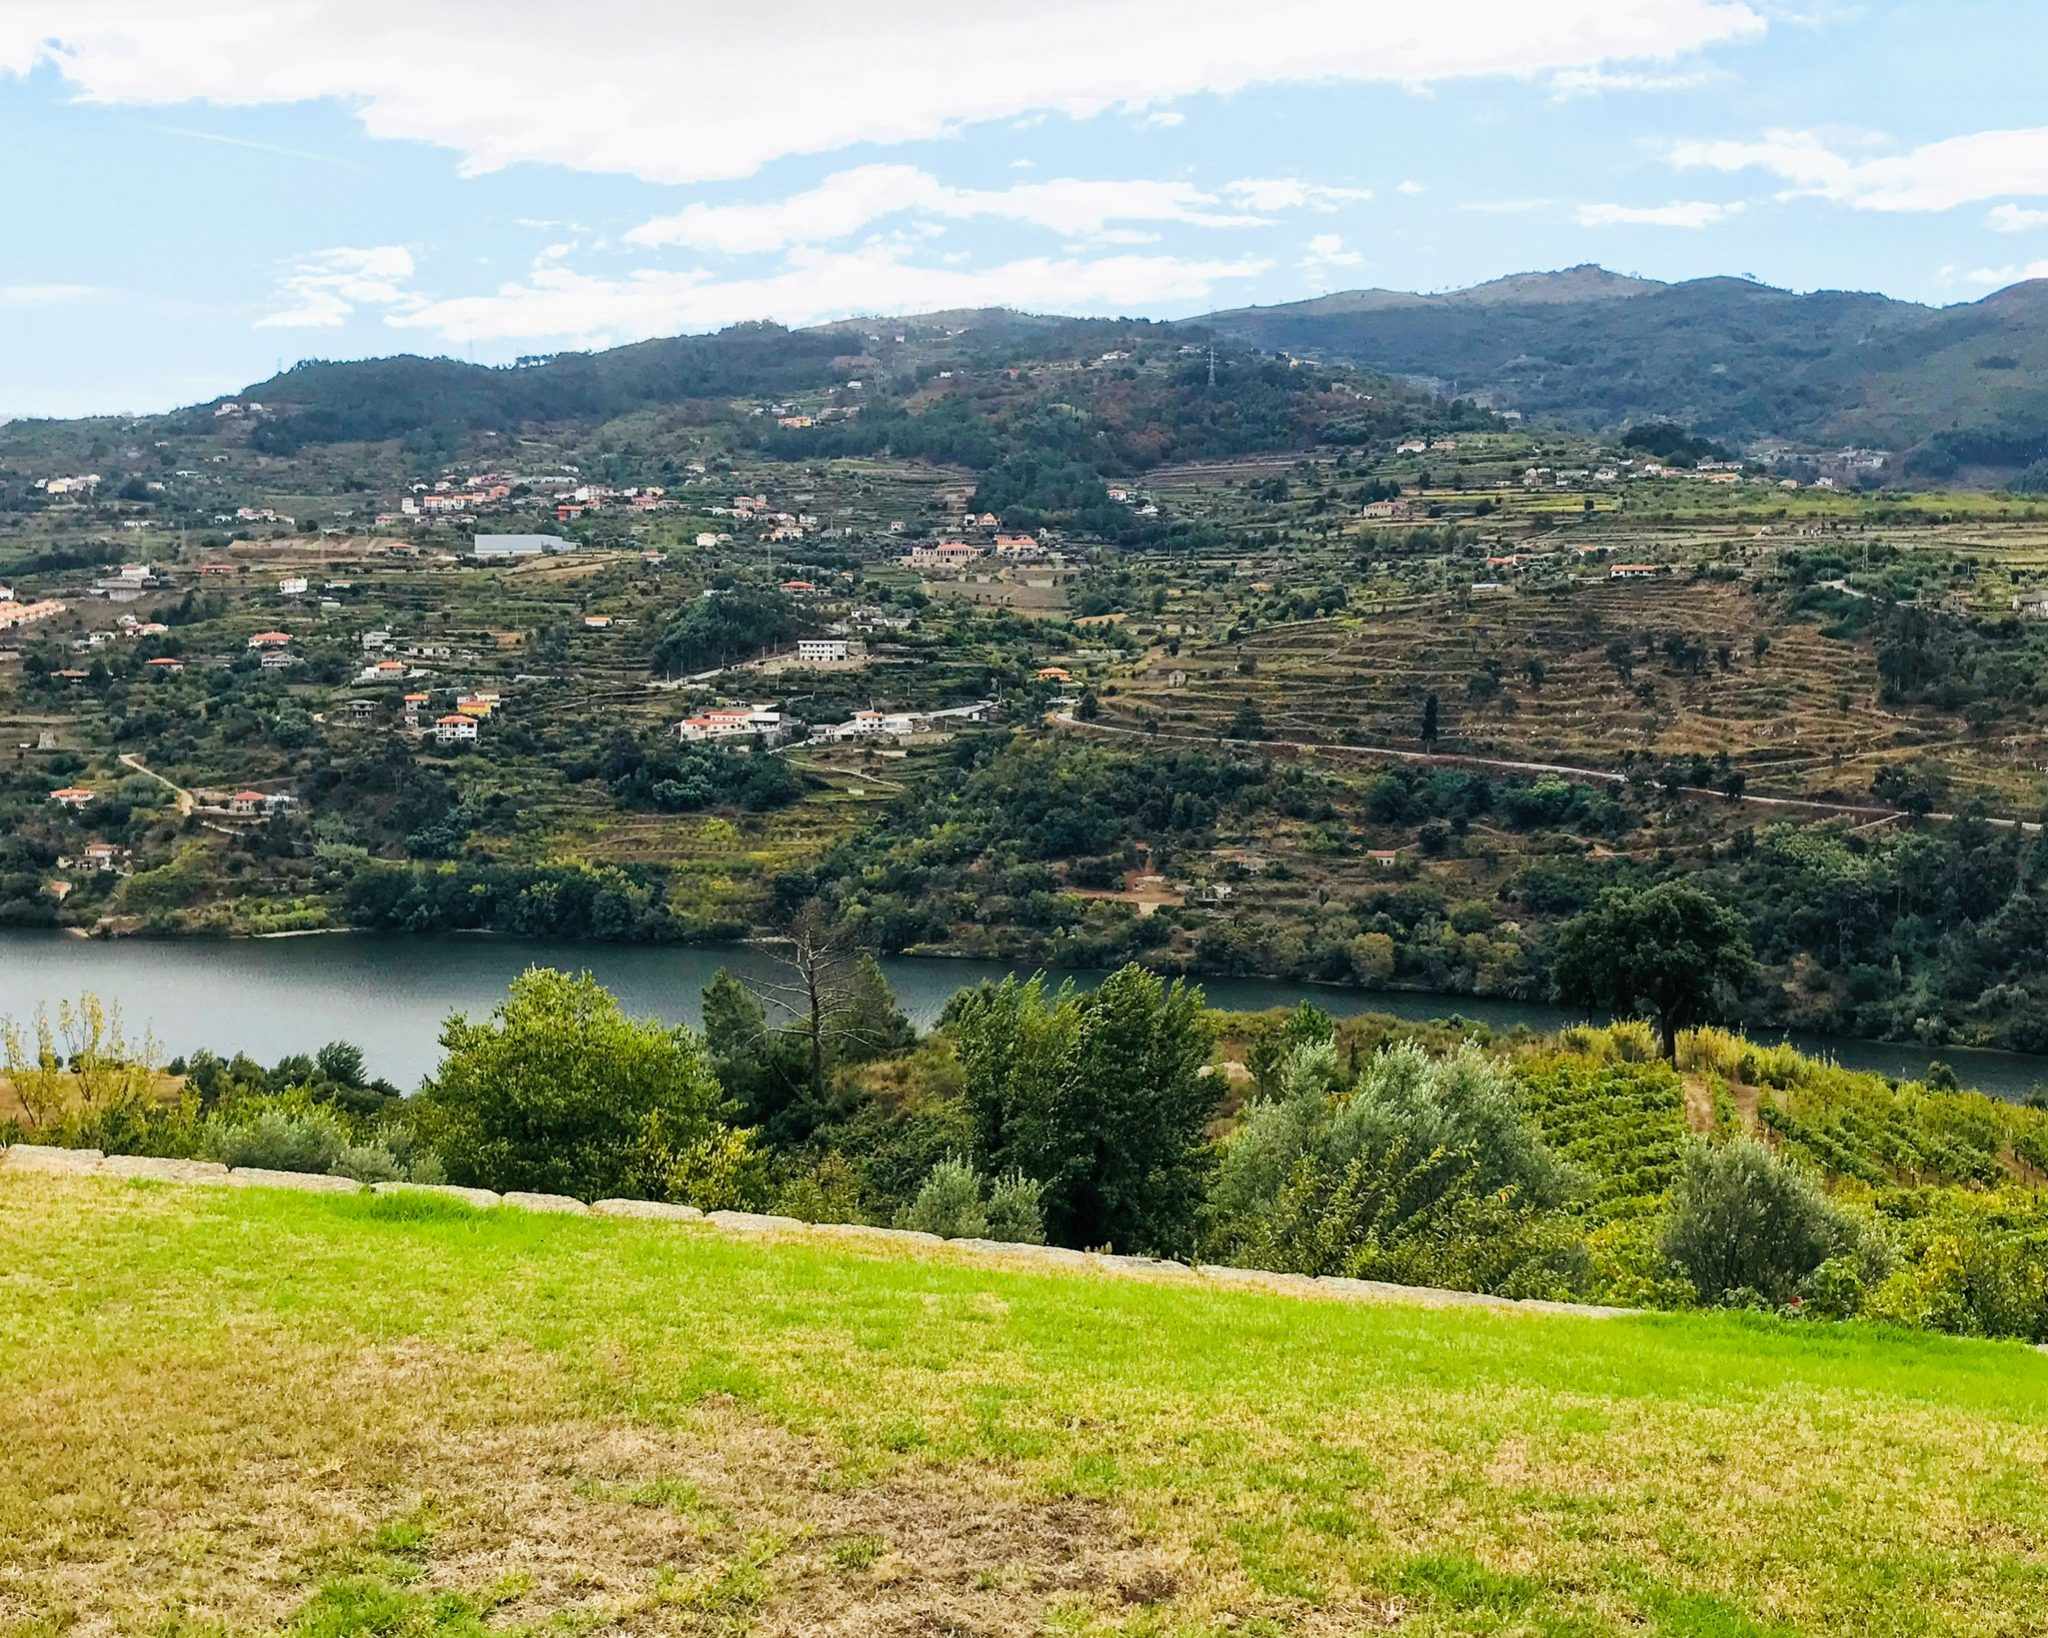 View of Douro River in Portugal's Douro Valley